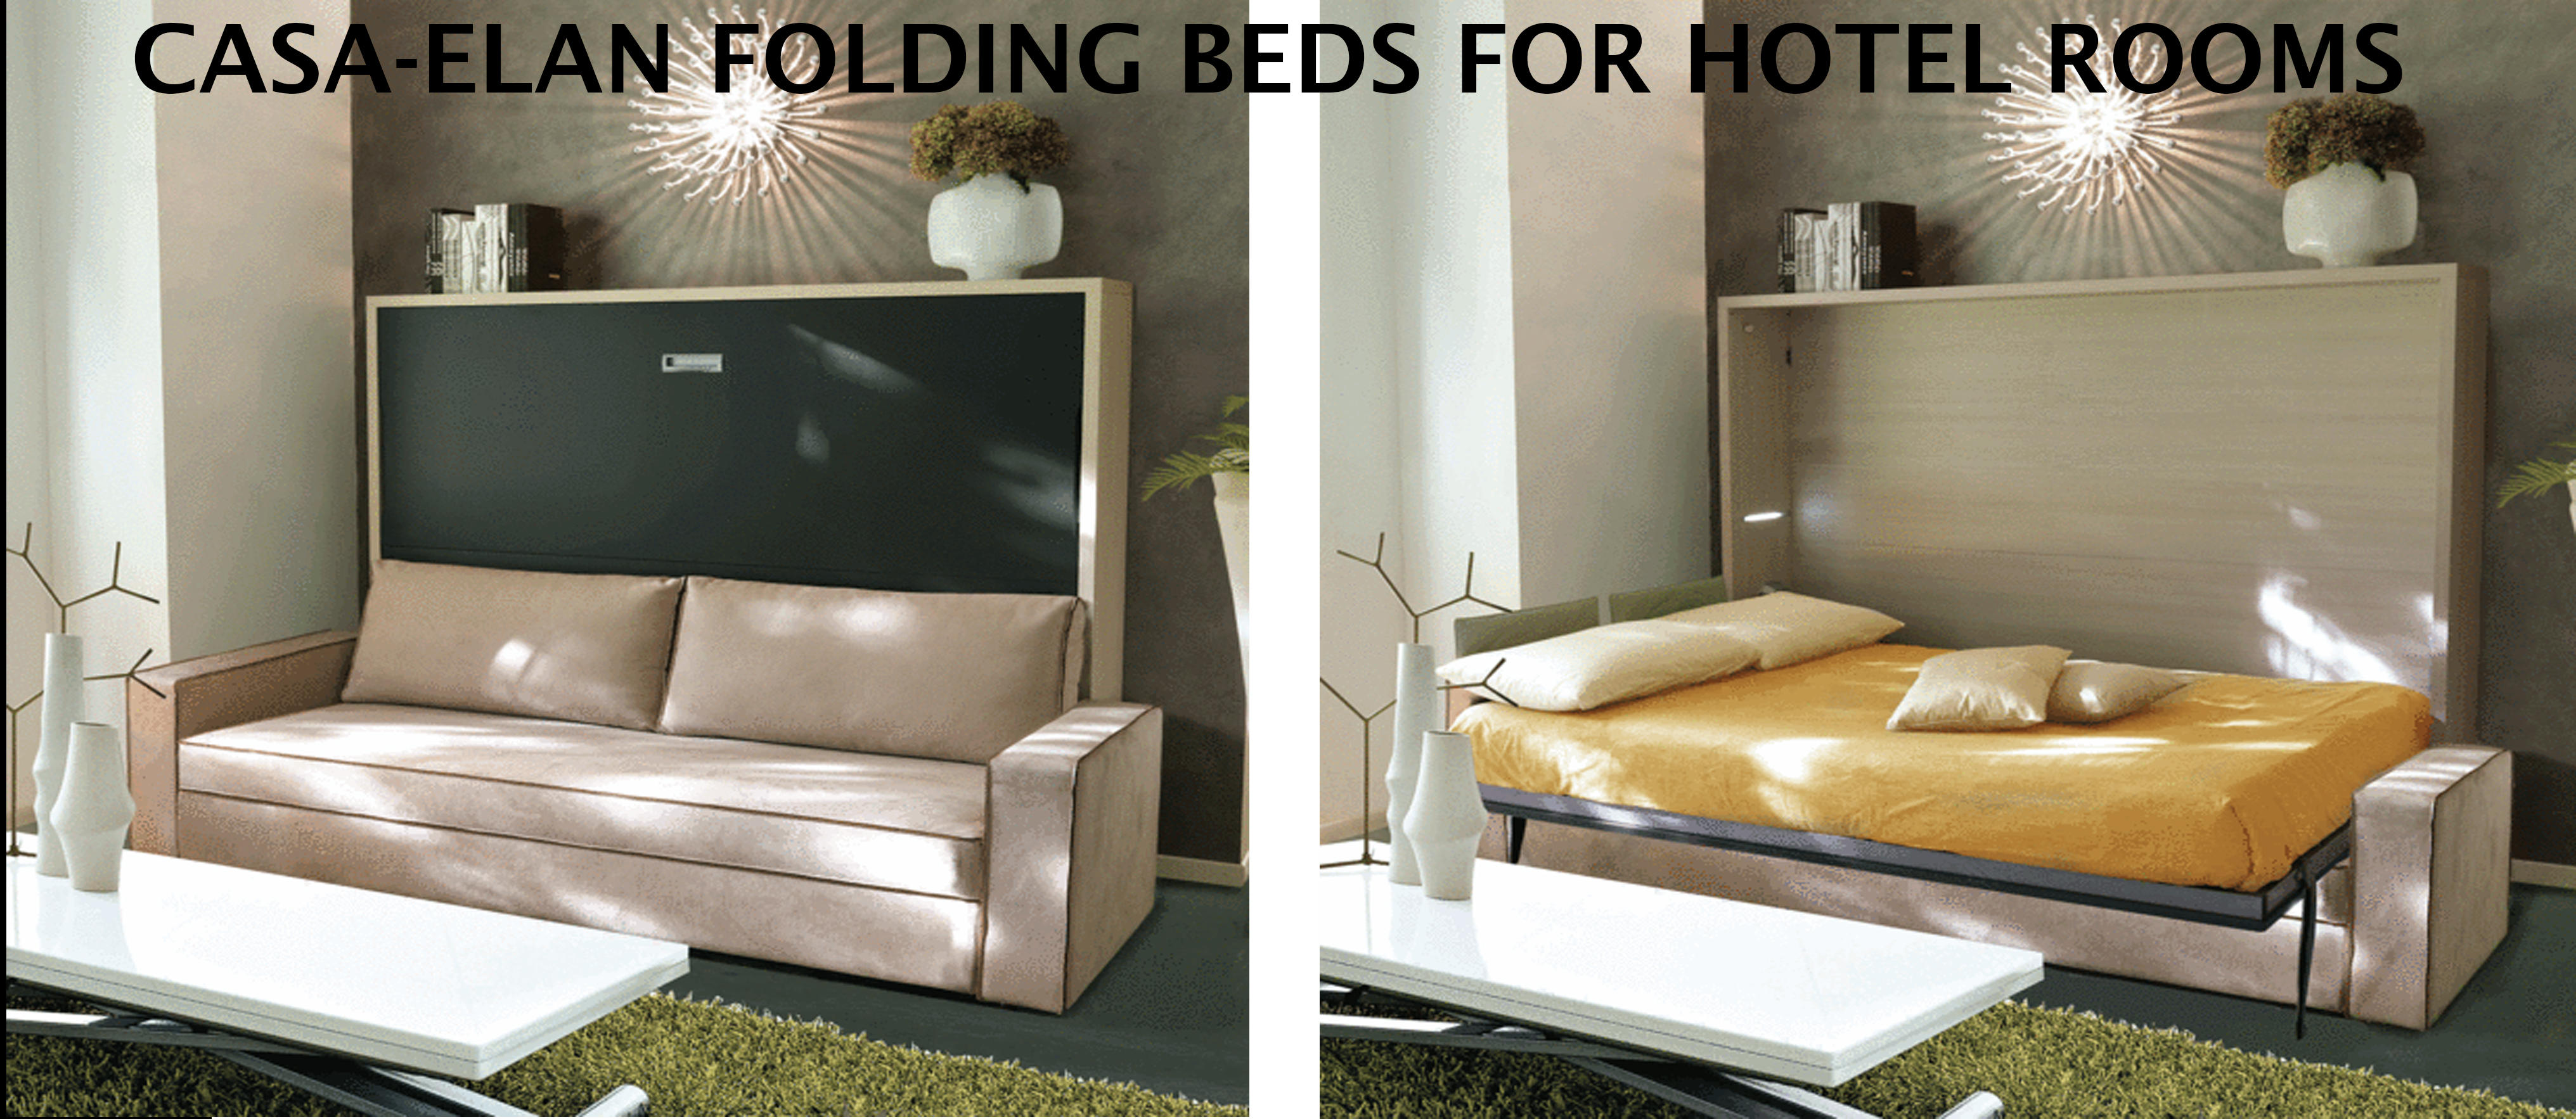 Sofa Bed Abu Dhabi Casa Elan Murphy Folding Wall Bed Models دبي